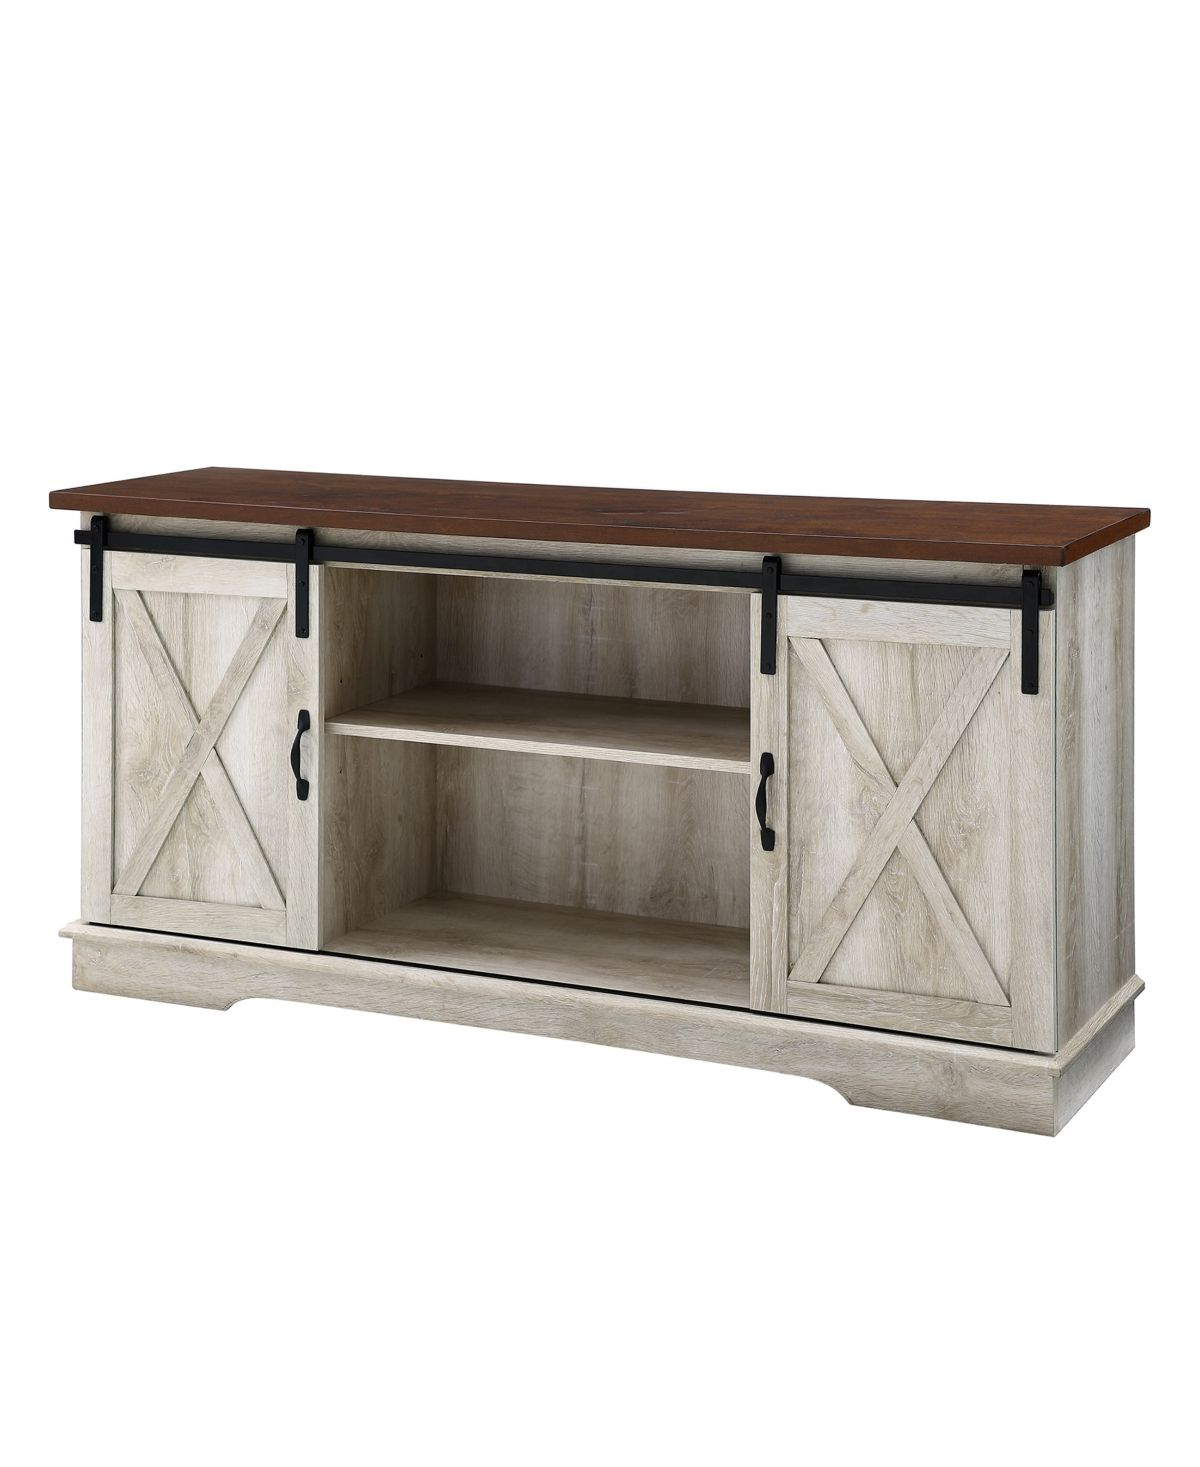 """Walker Edison 58"""" Farmhouse Tv Stand With Sliding Barn With Regard To Newest Jaxpety 58"""" Farmhouse Sliding Barn Door Tv Stands (View 4 of 10)"""